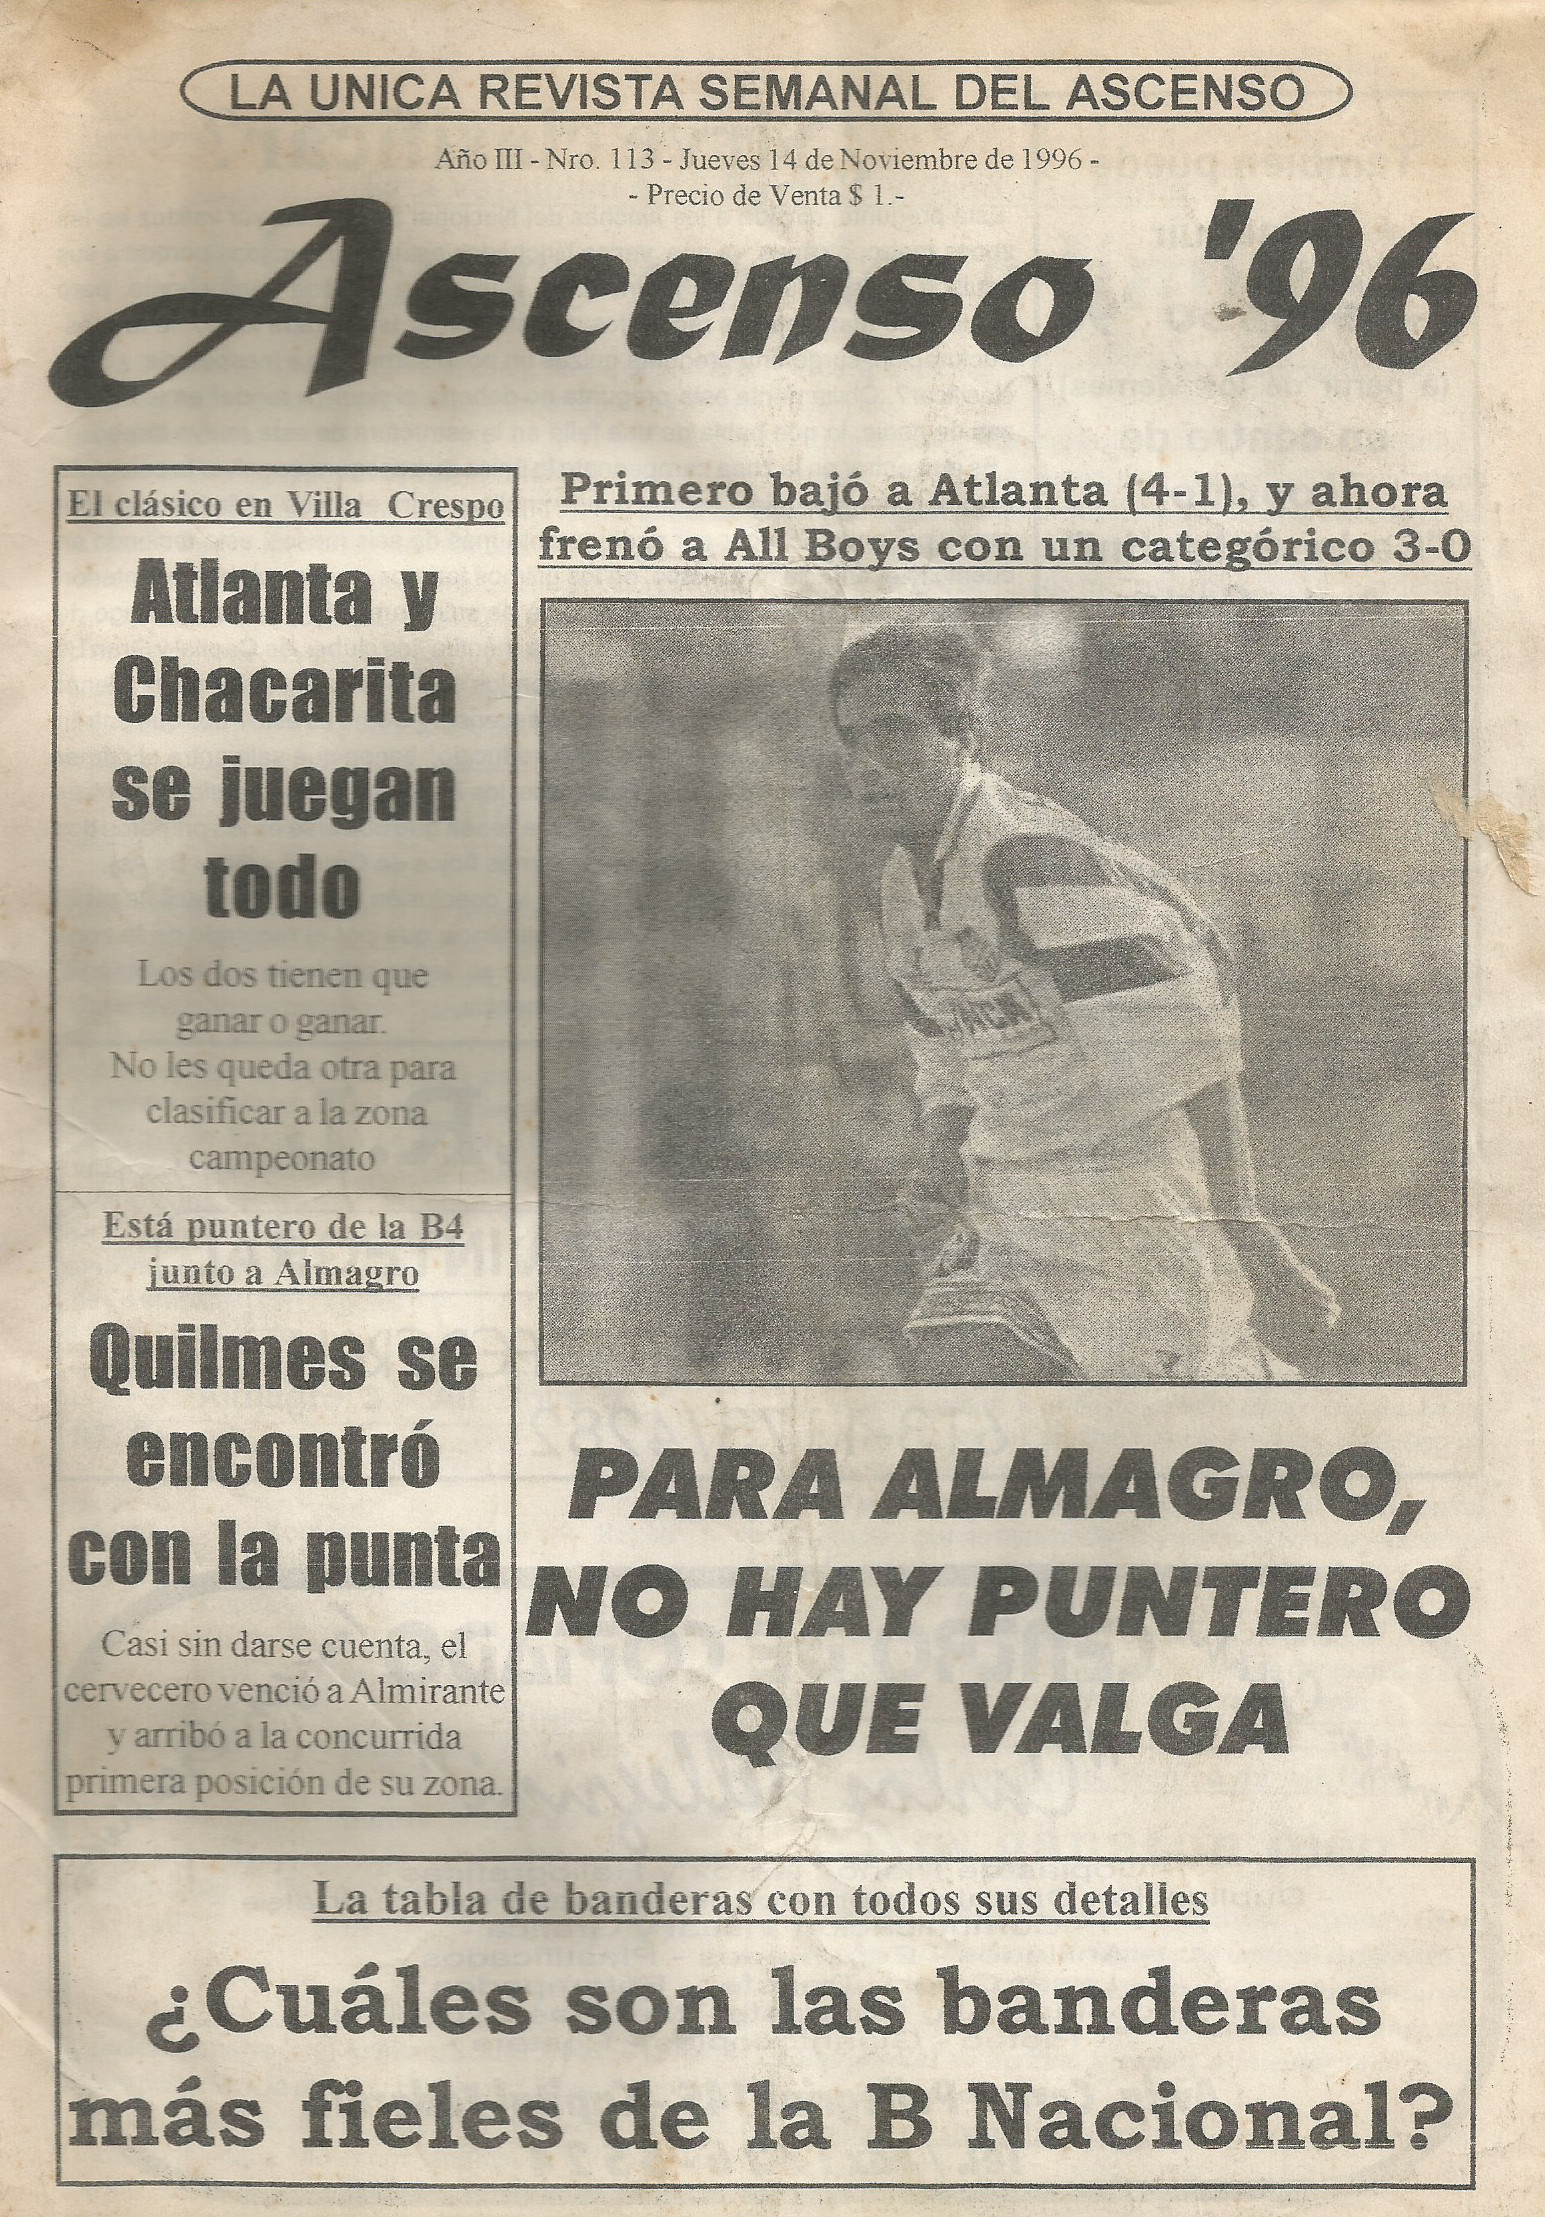 1996-97 NACIONAL B - ALMAGRO ALL BOYS - ASCENSO 96